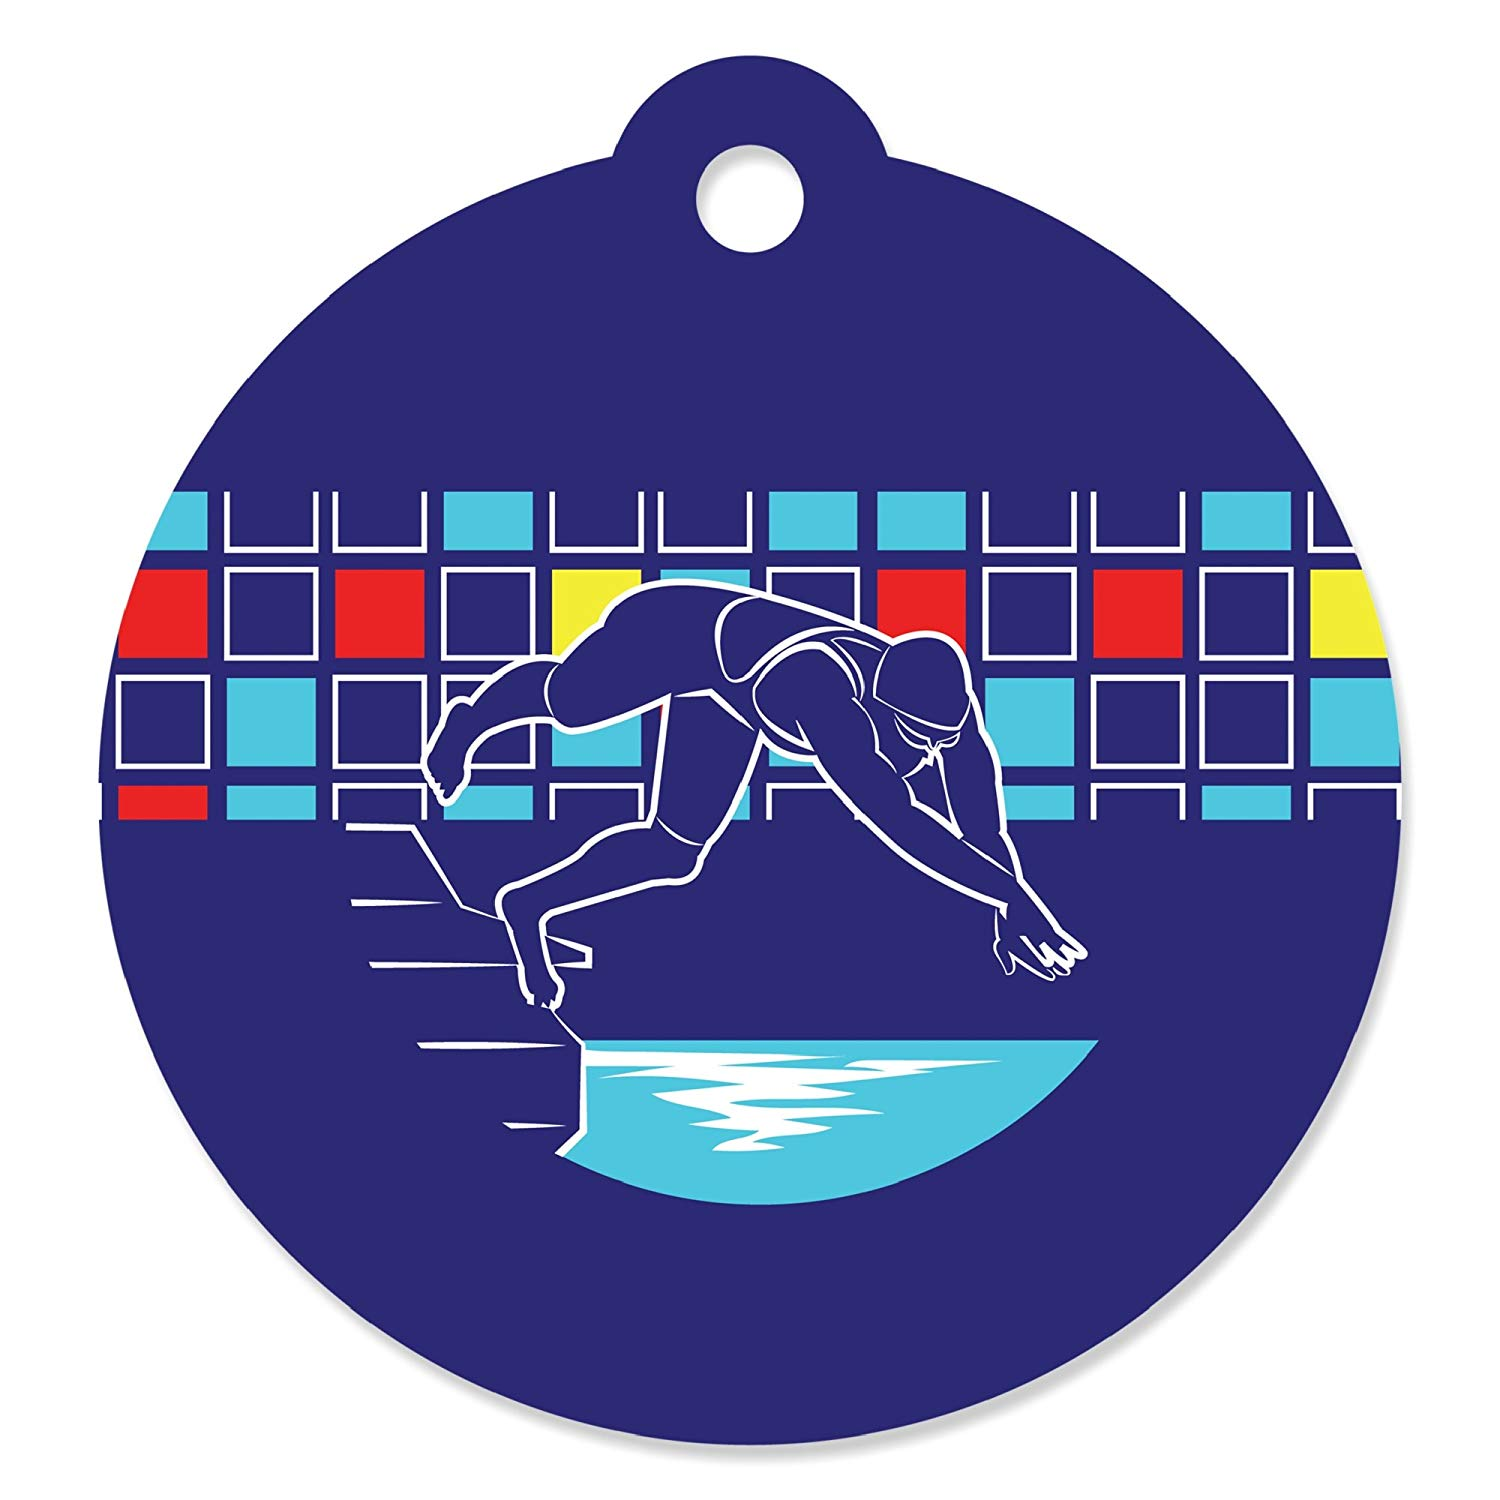 Making Waves - Swim Team - Swimming Party or Birthday Party Favor Gift Tags (Set of 20)